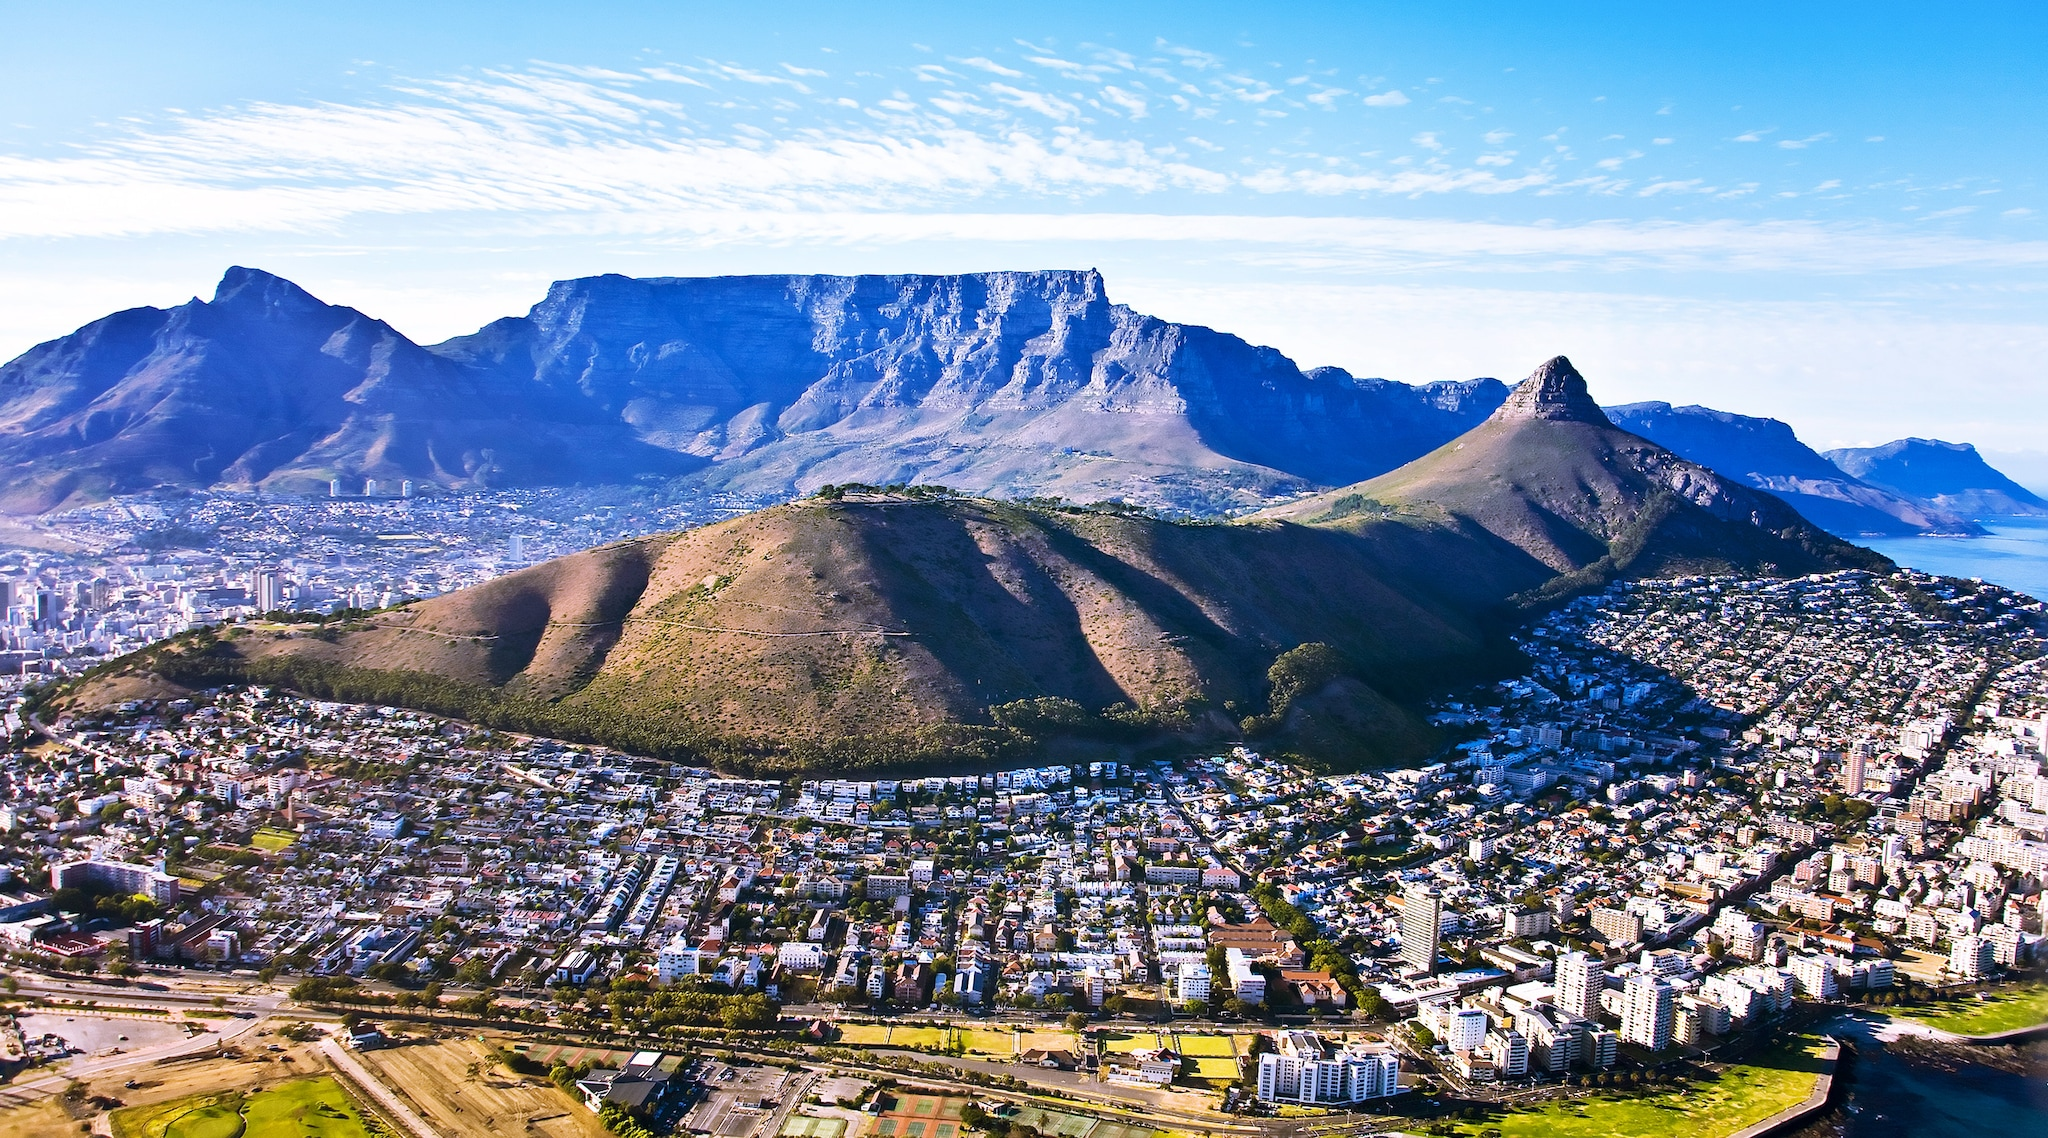 Landscape view of Cape Town in South Africa